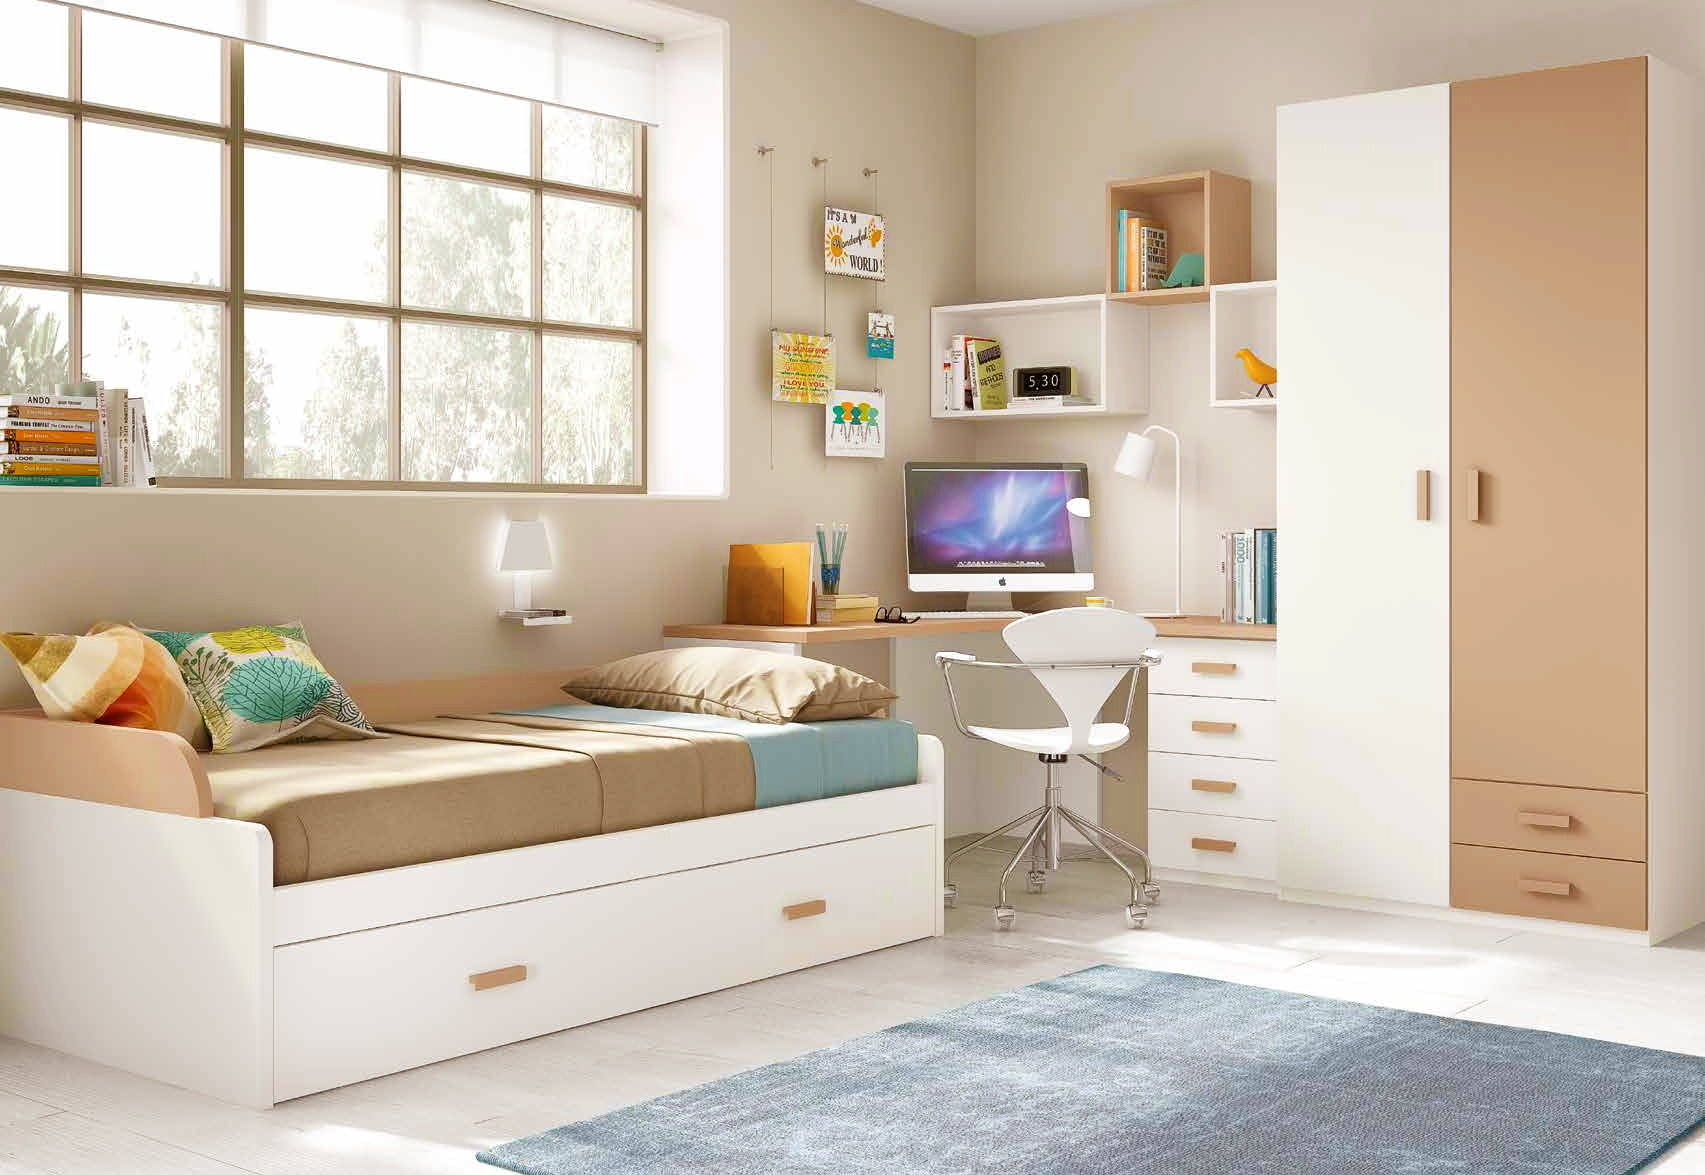 chambre pour enfant cosy avec son lit gigogne glicerio so nuit. Black Bedroom Furniture Sets. Home Design Ideas